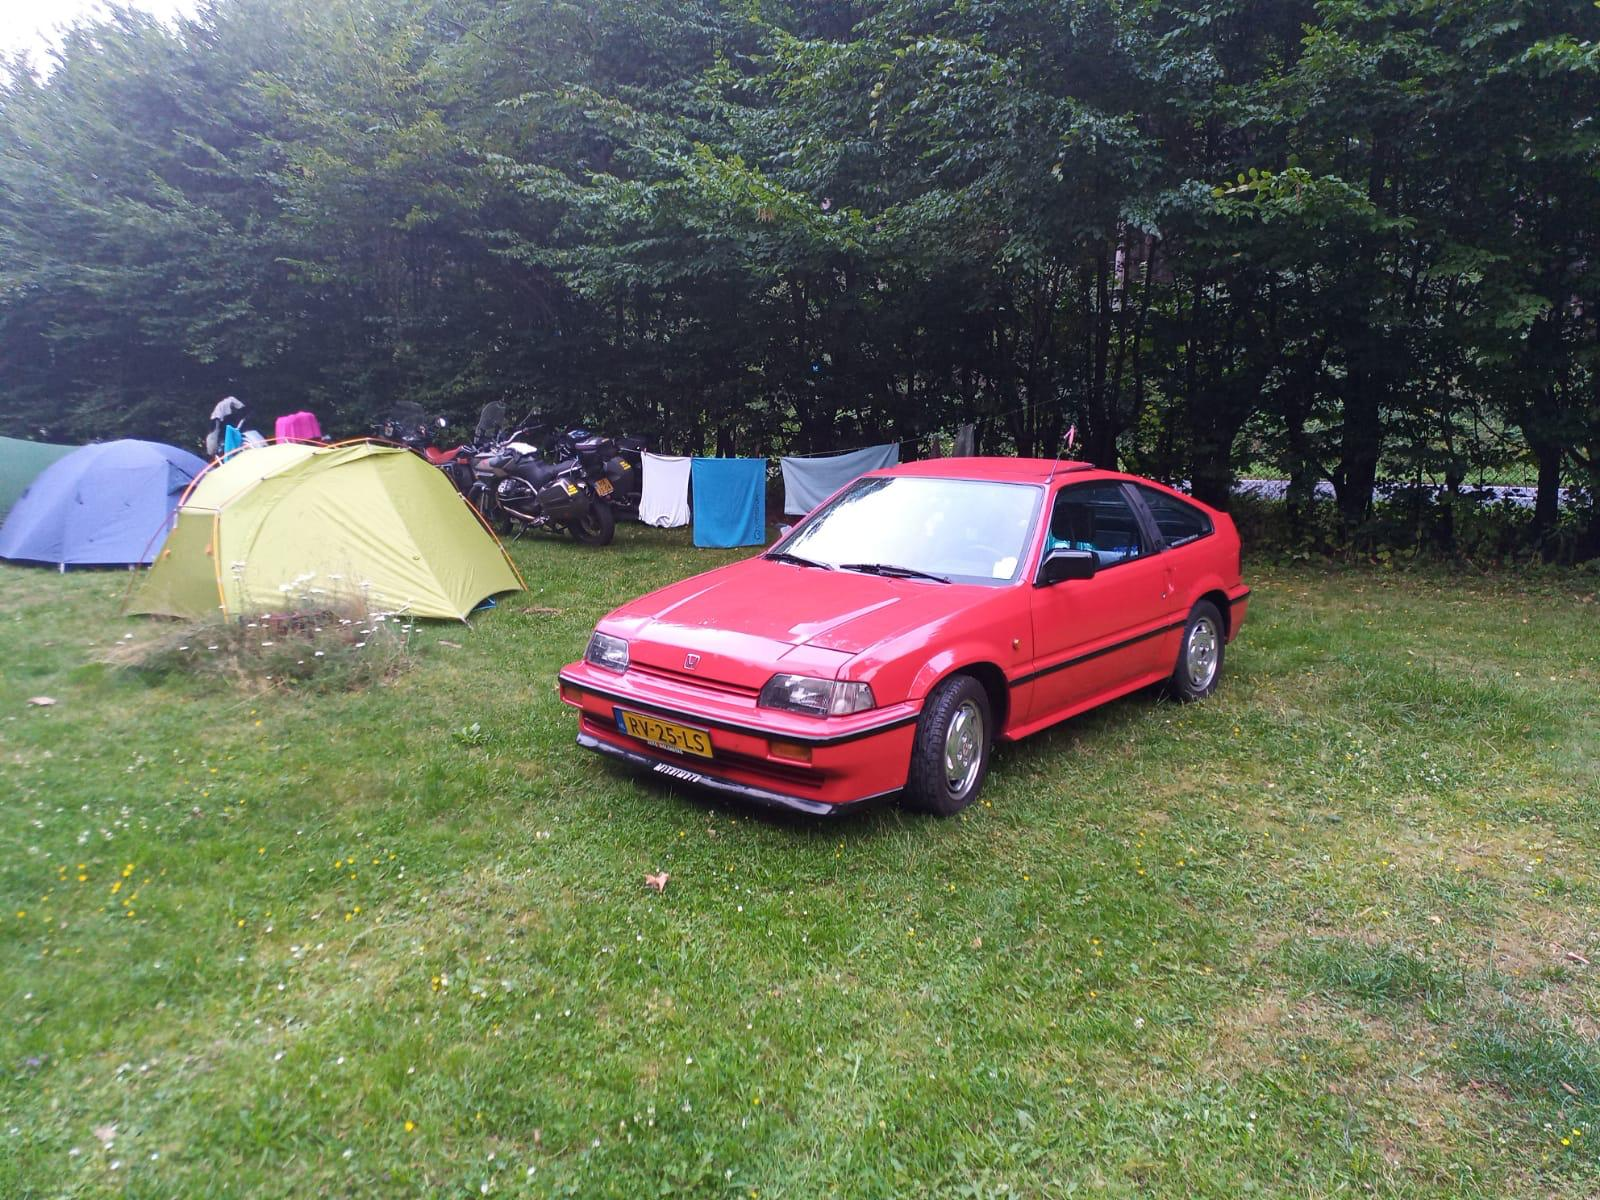 IMG_20200814_175943a